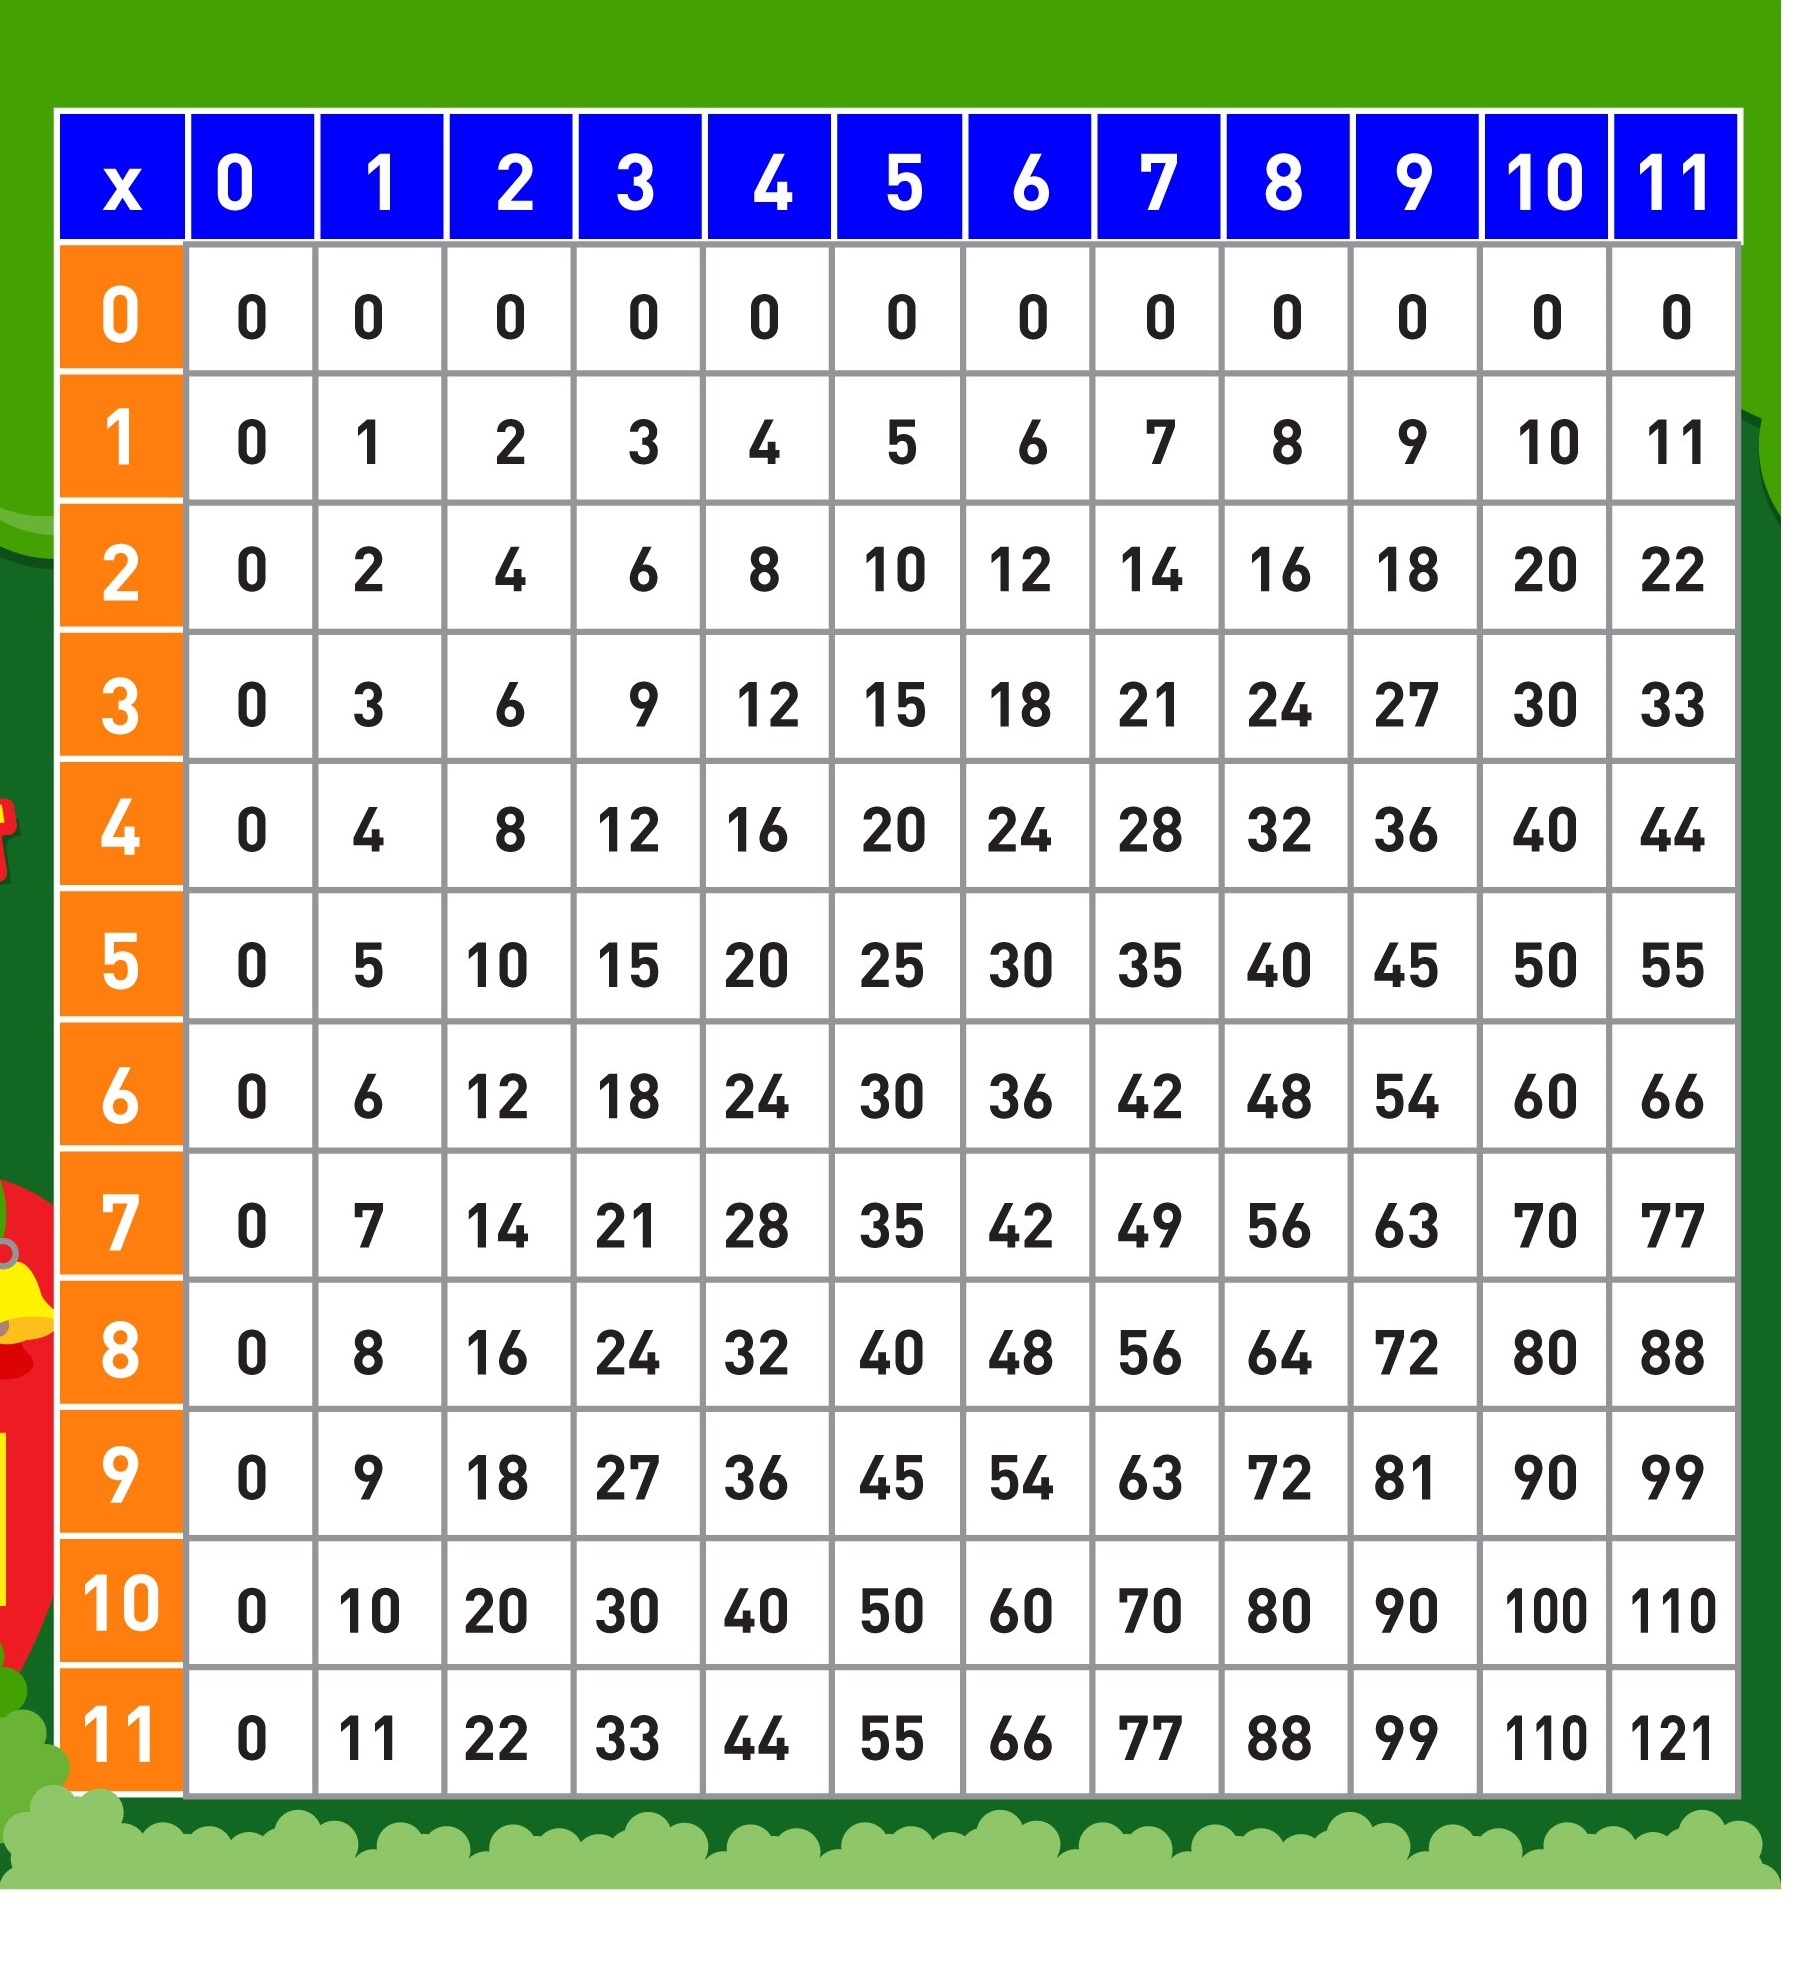 multiplication table 1 10 printable 6 funnycrafts